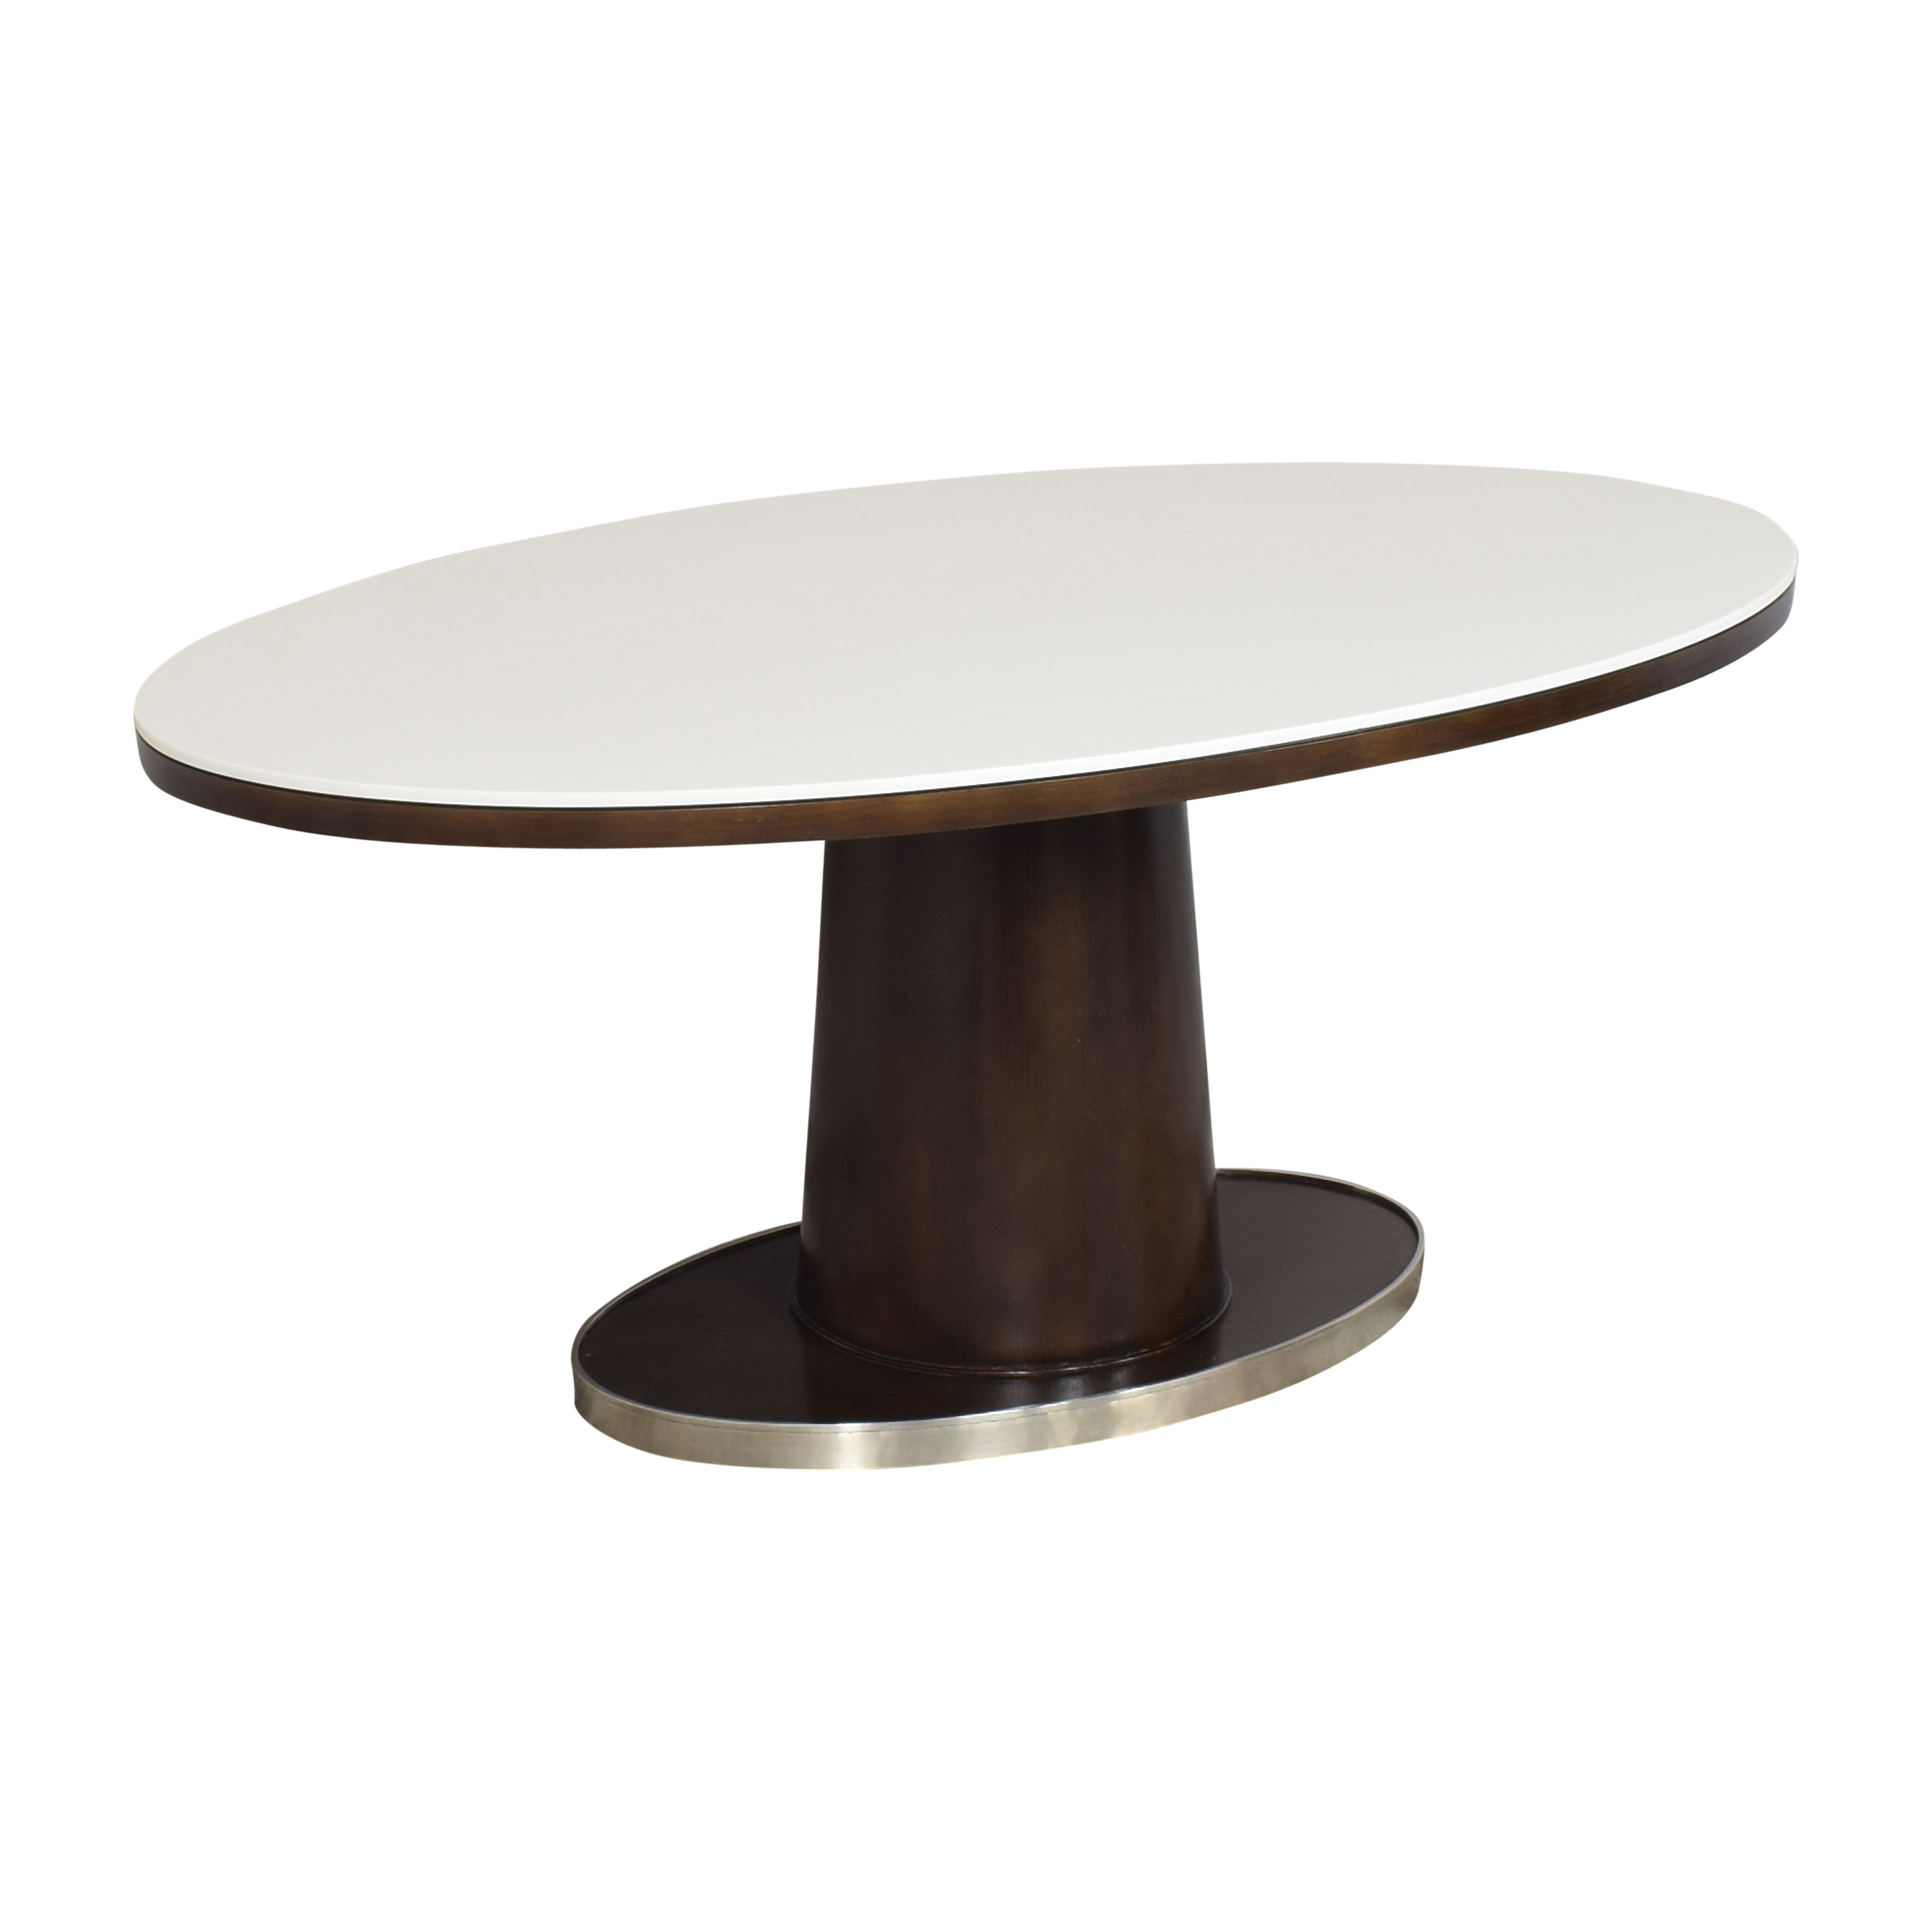 buy McGuire Barbara Barry Classic Oval Pedestal Table McGuire